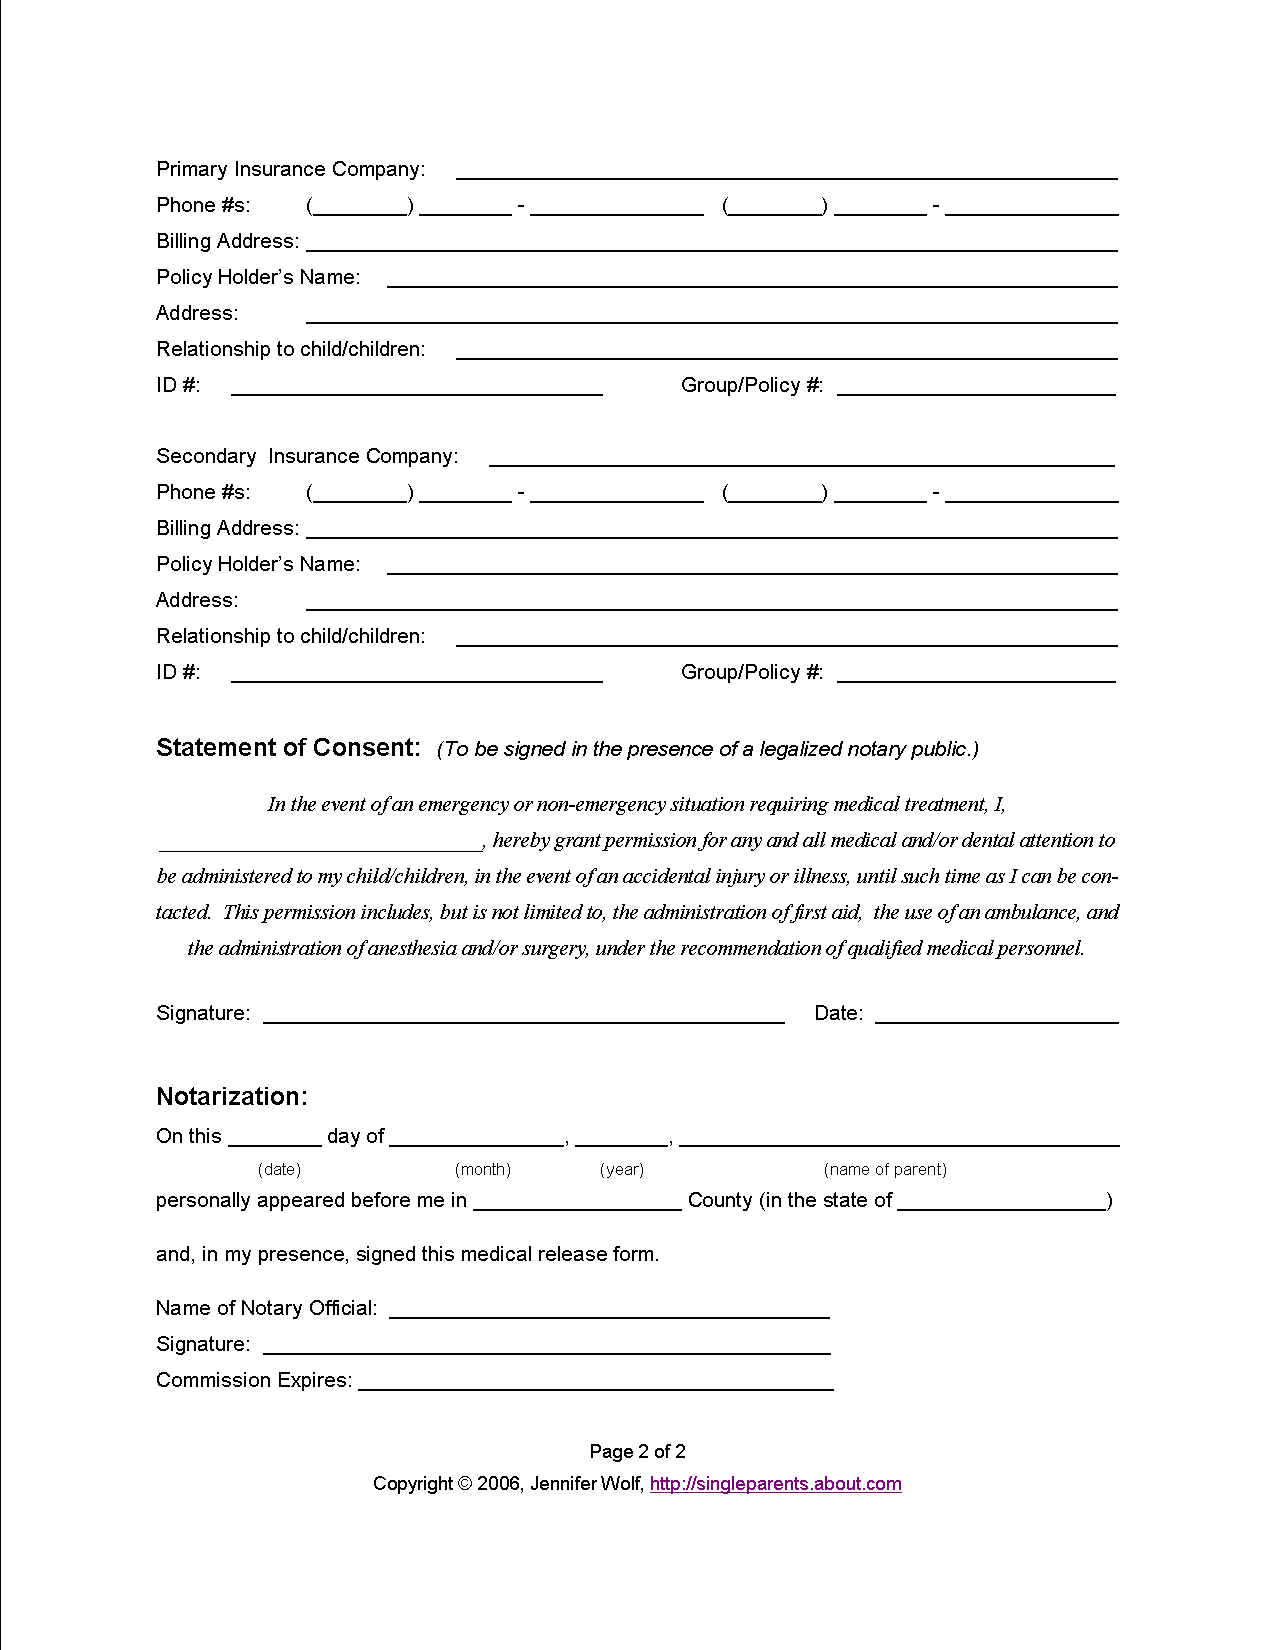 Medical Release form for Grandparents